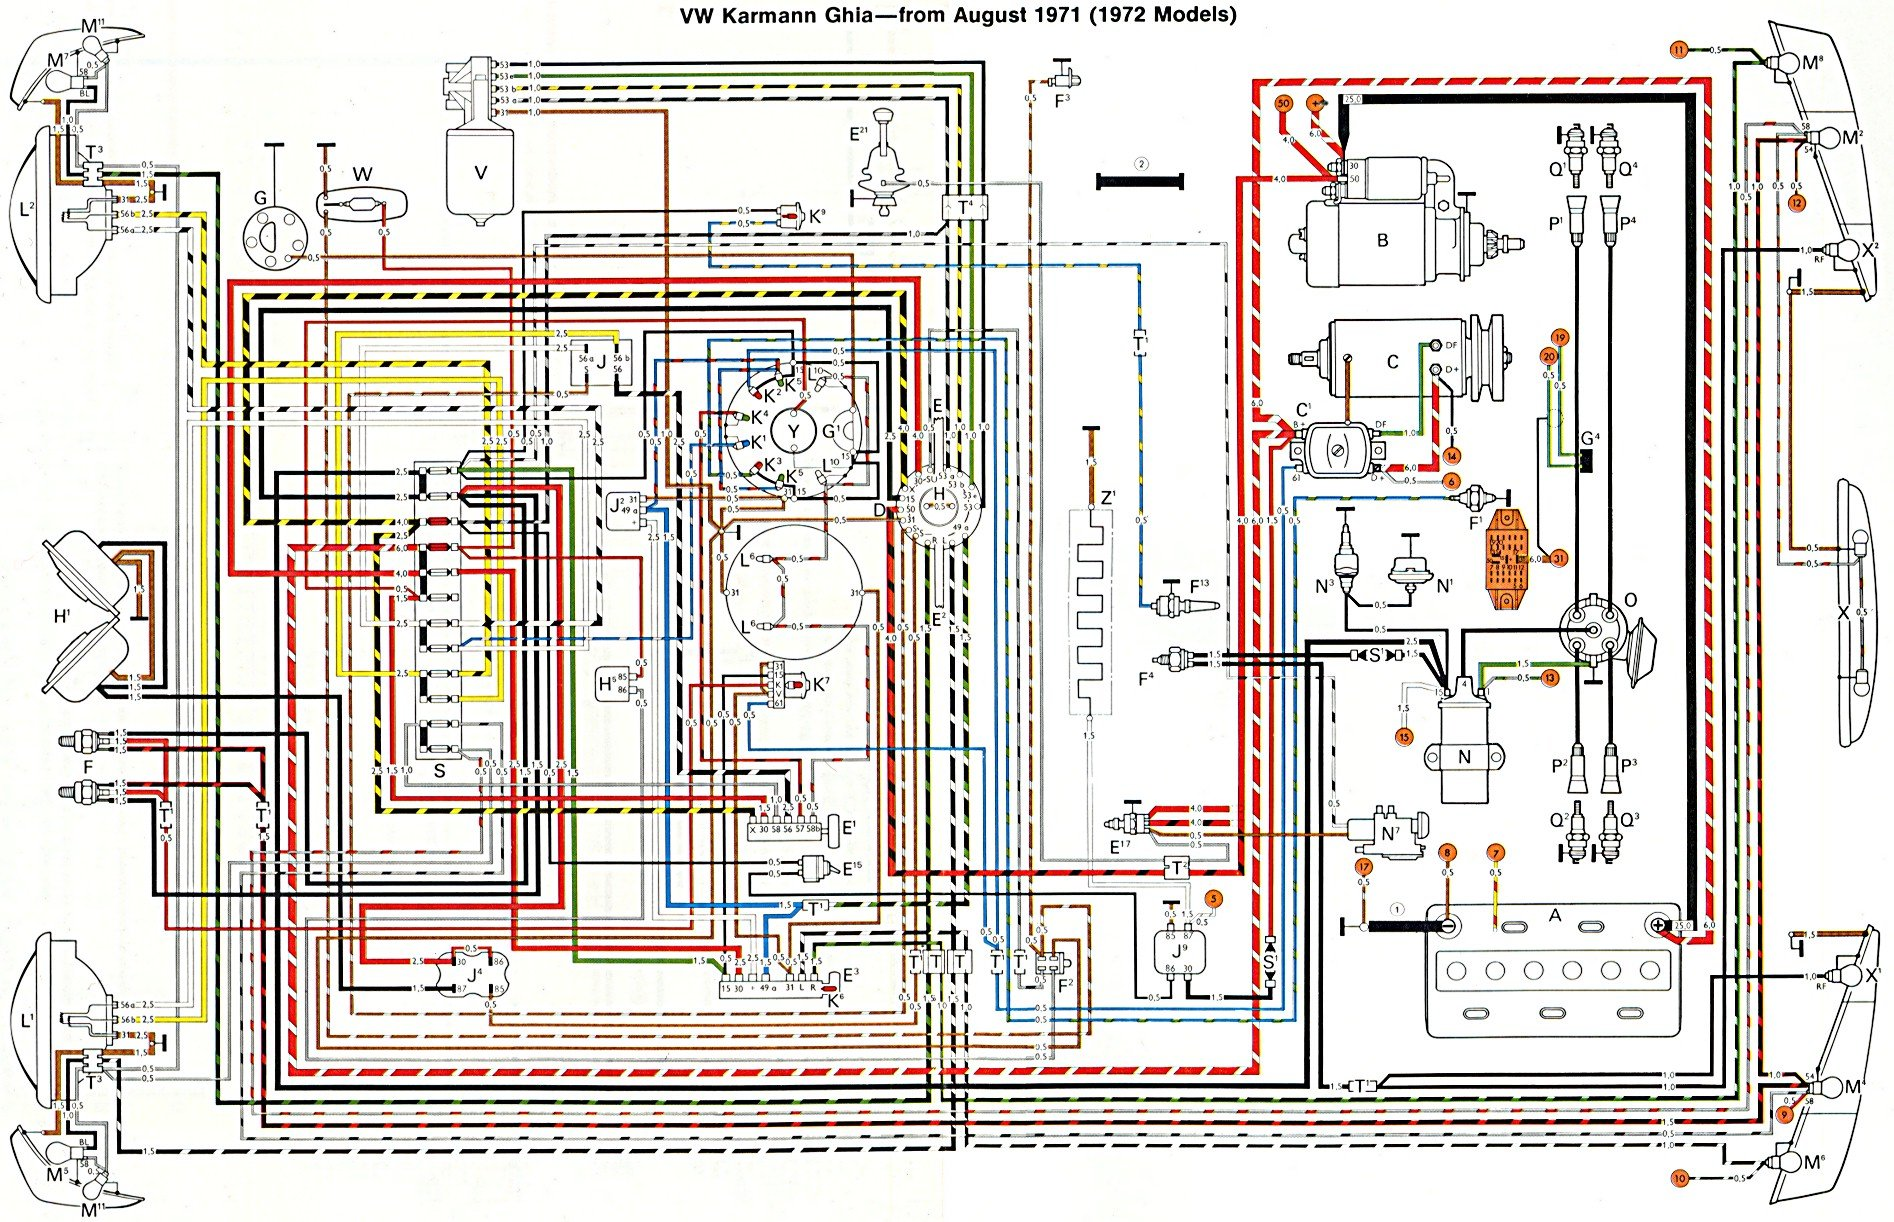 72ghia 65 vw wiring diagram wiring diagram simonand wiring diagram for 1972 vw beetle at sewacar.co